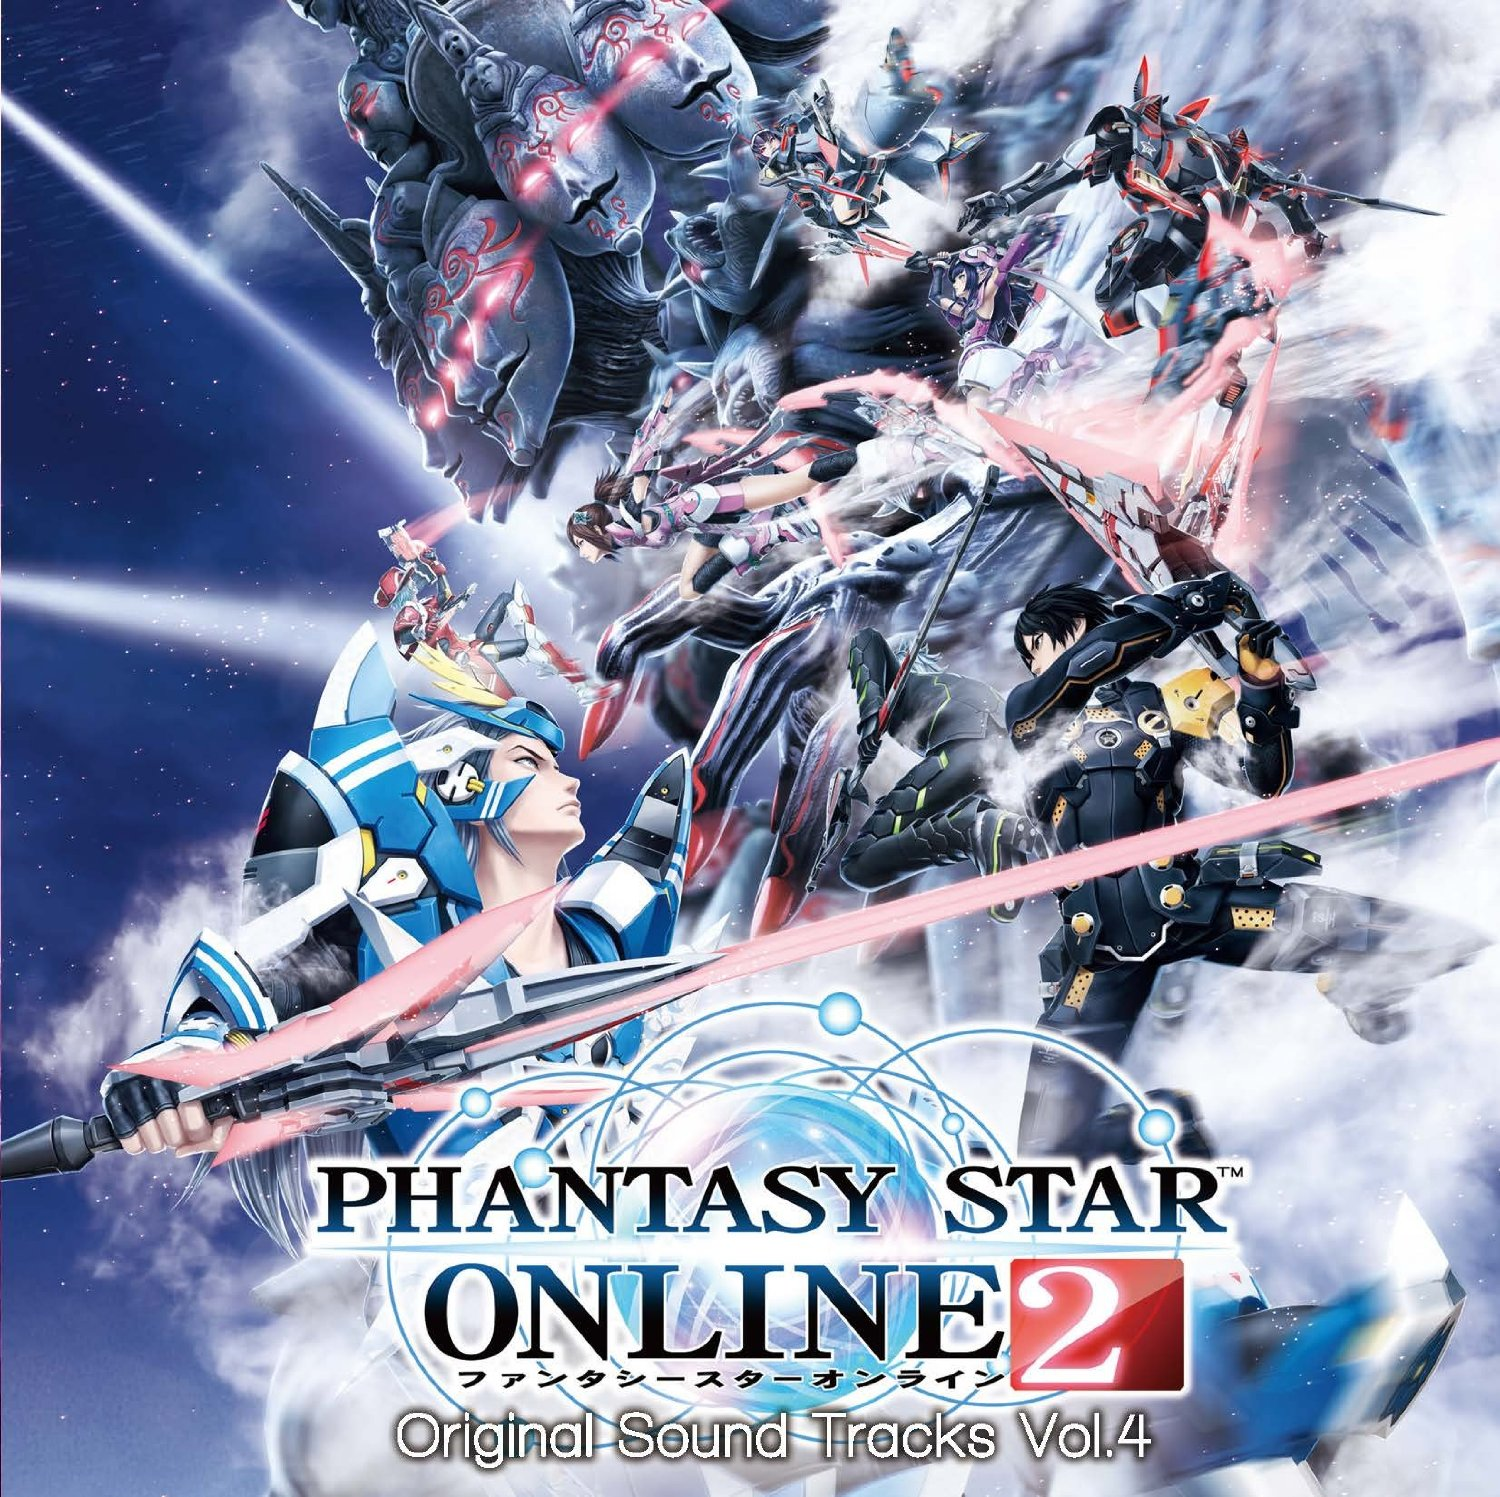 phantasy star online 2 download pc